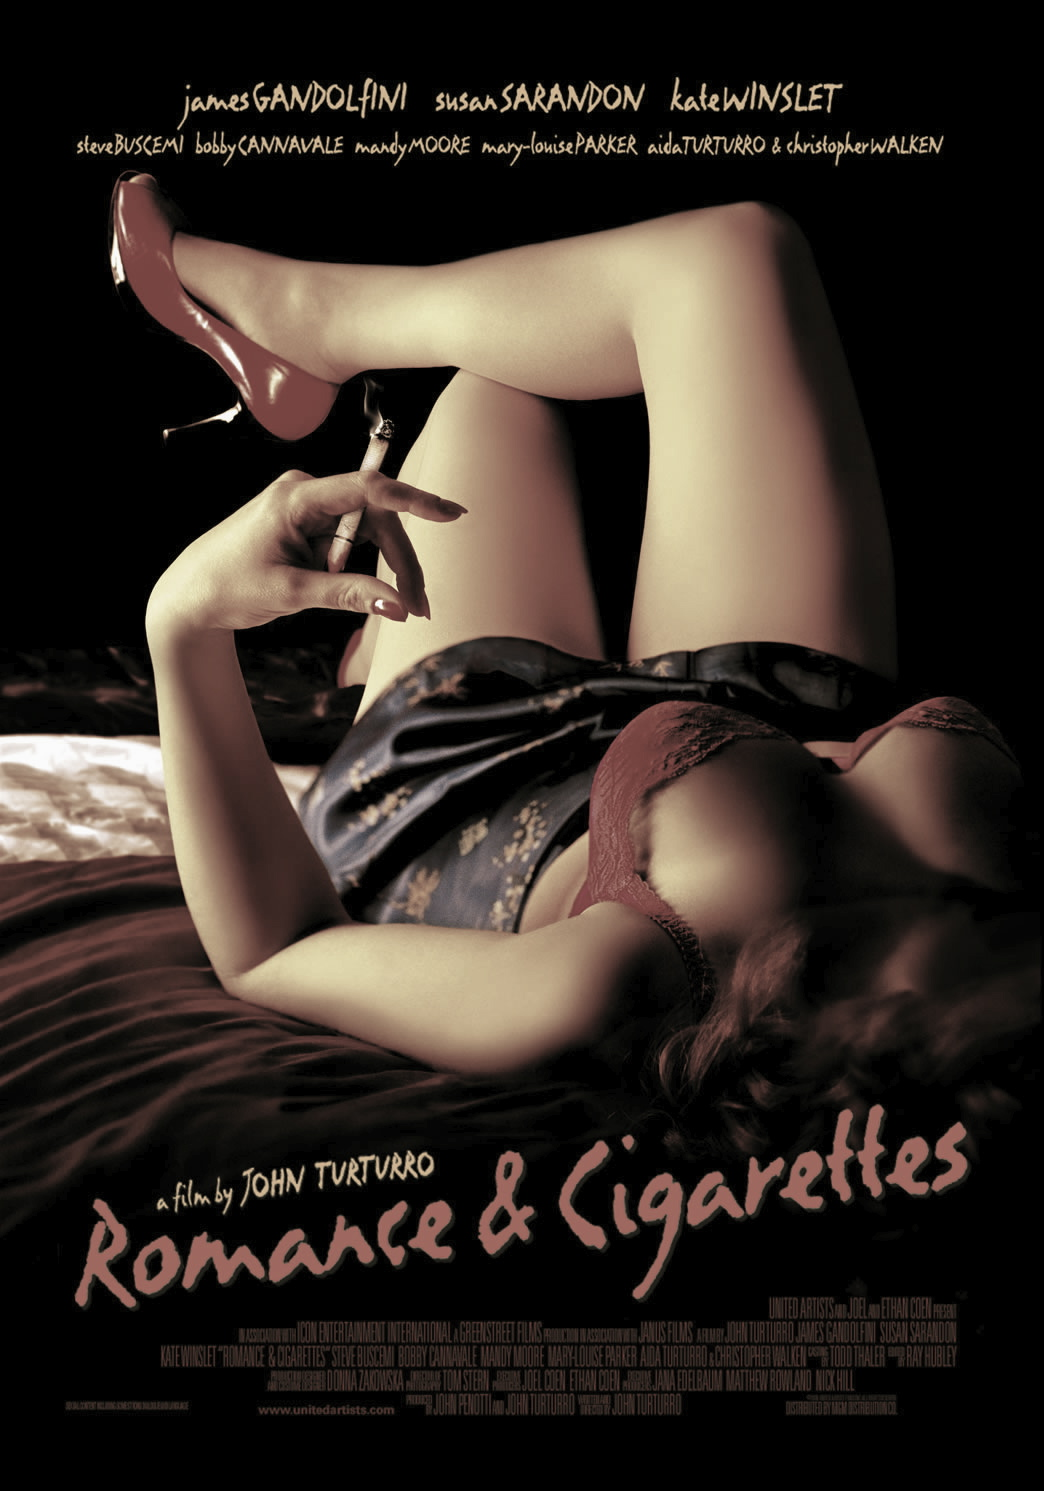 romance-and-cigarettes-poster